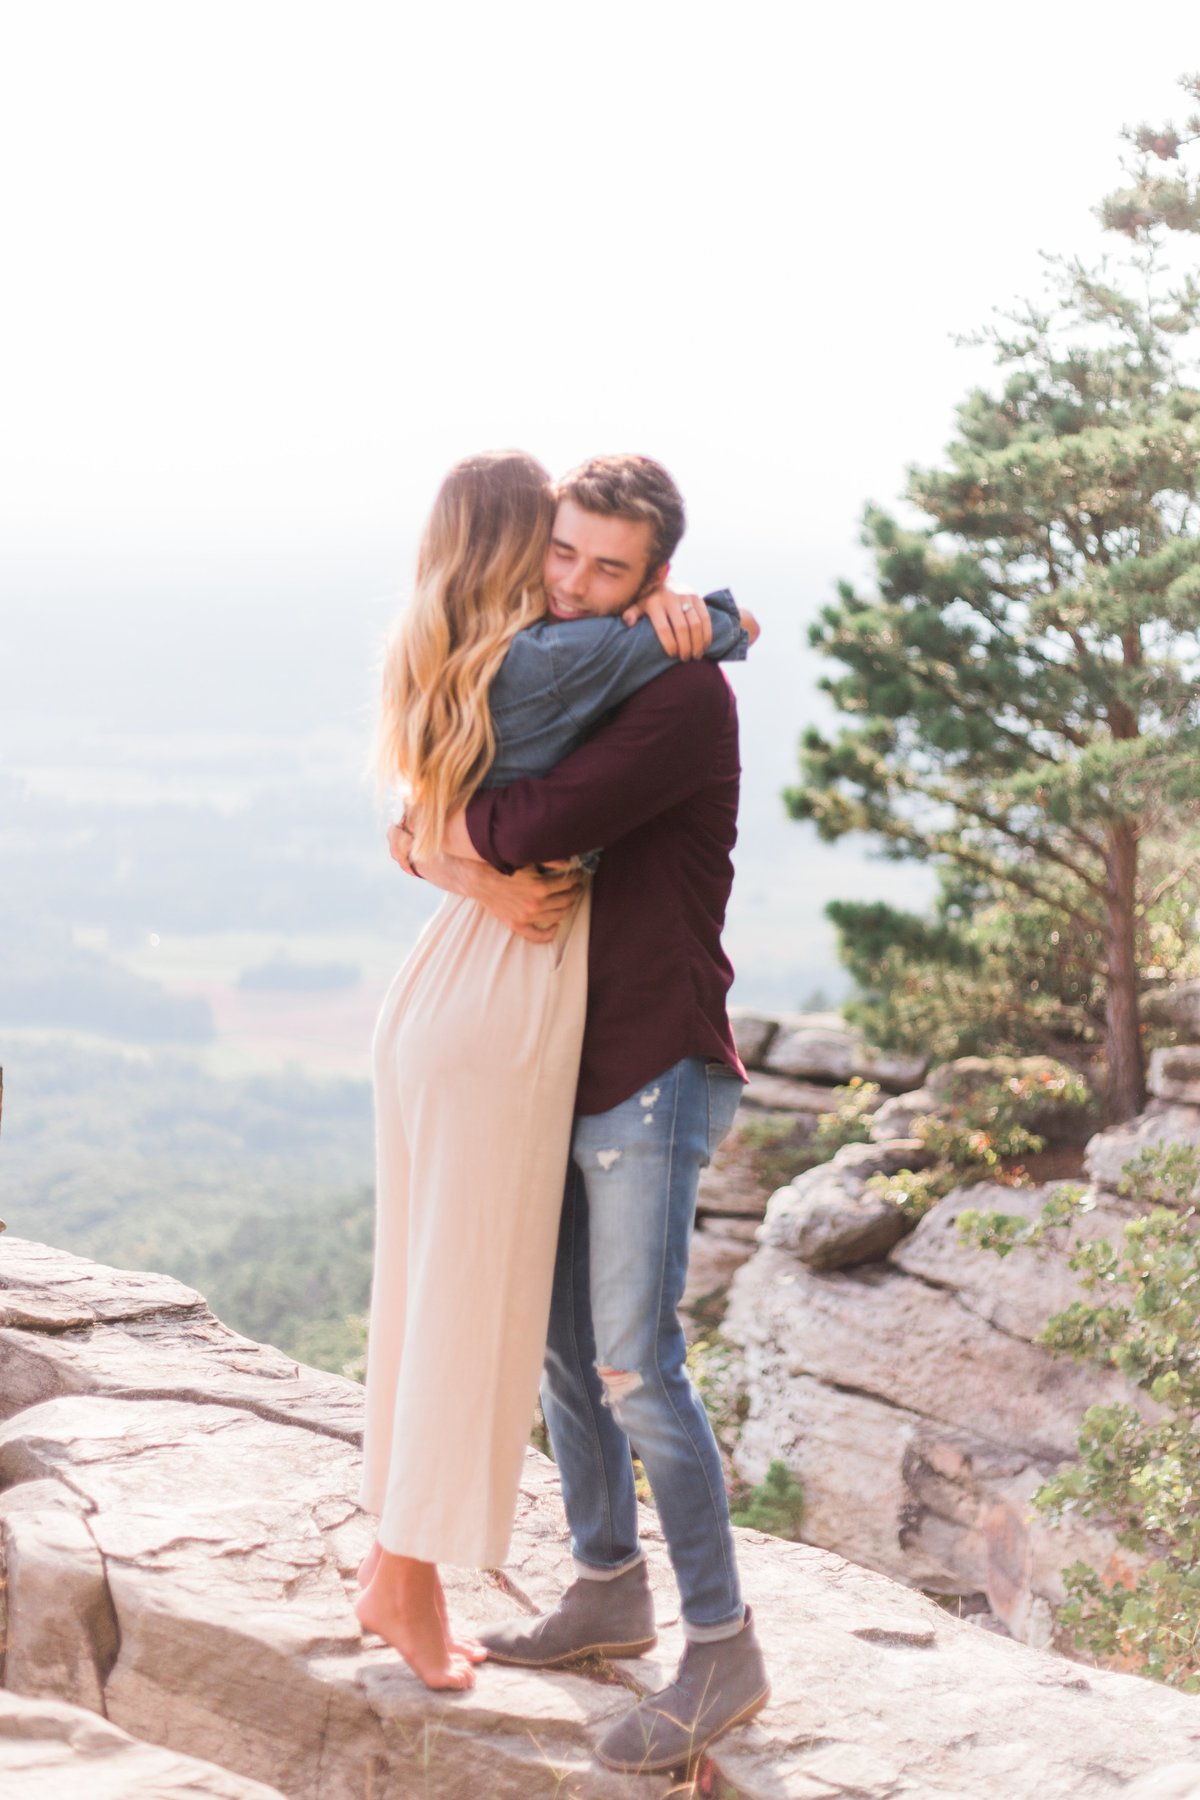 boone-engagement-session-destination-wedding-photographer-51